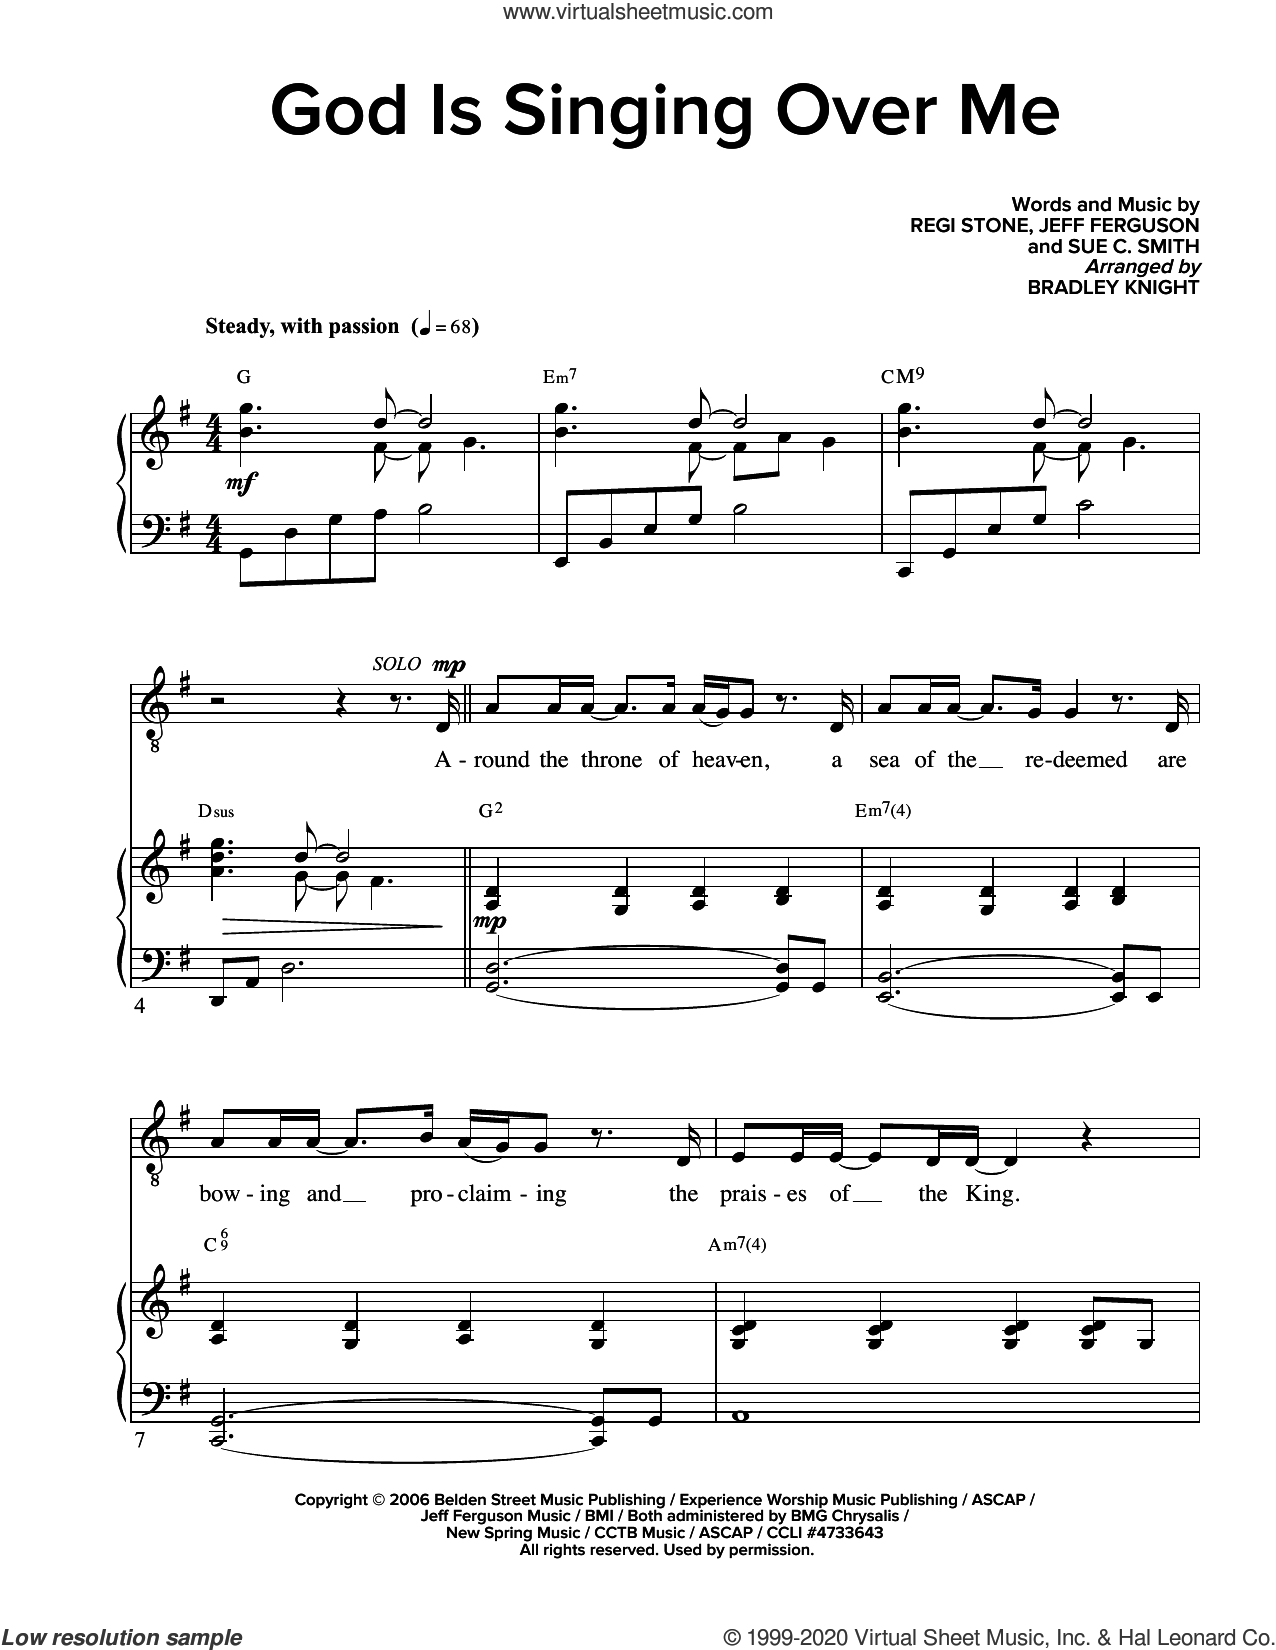 God Is Singing Over Me (arr. Bradley Knight) sheet music for voice and piano by Regi Stone, Bradley Knight, Jeff Ferguson, Regi Stone, Jeff Ferguson and Sue C. Smith and Sue C. Smith, intermediate skill level